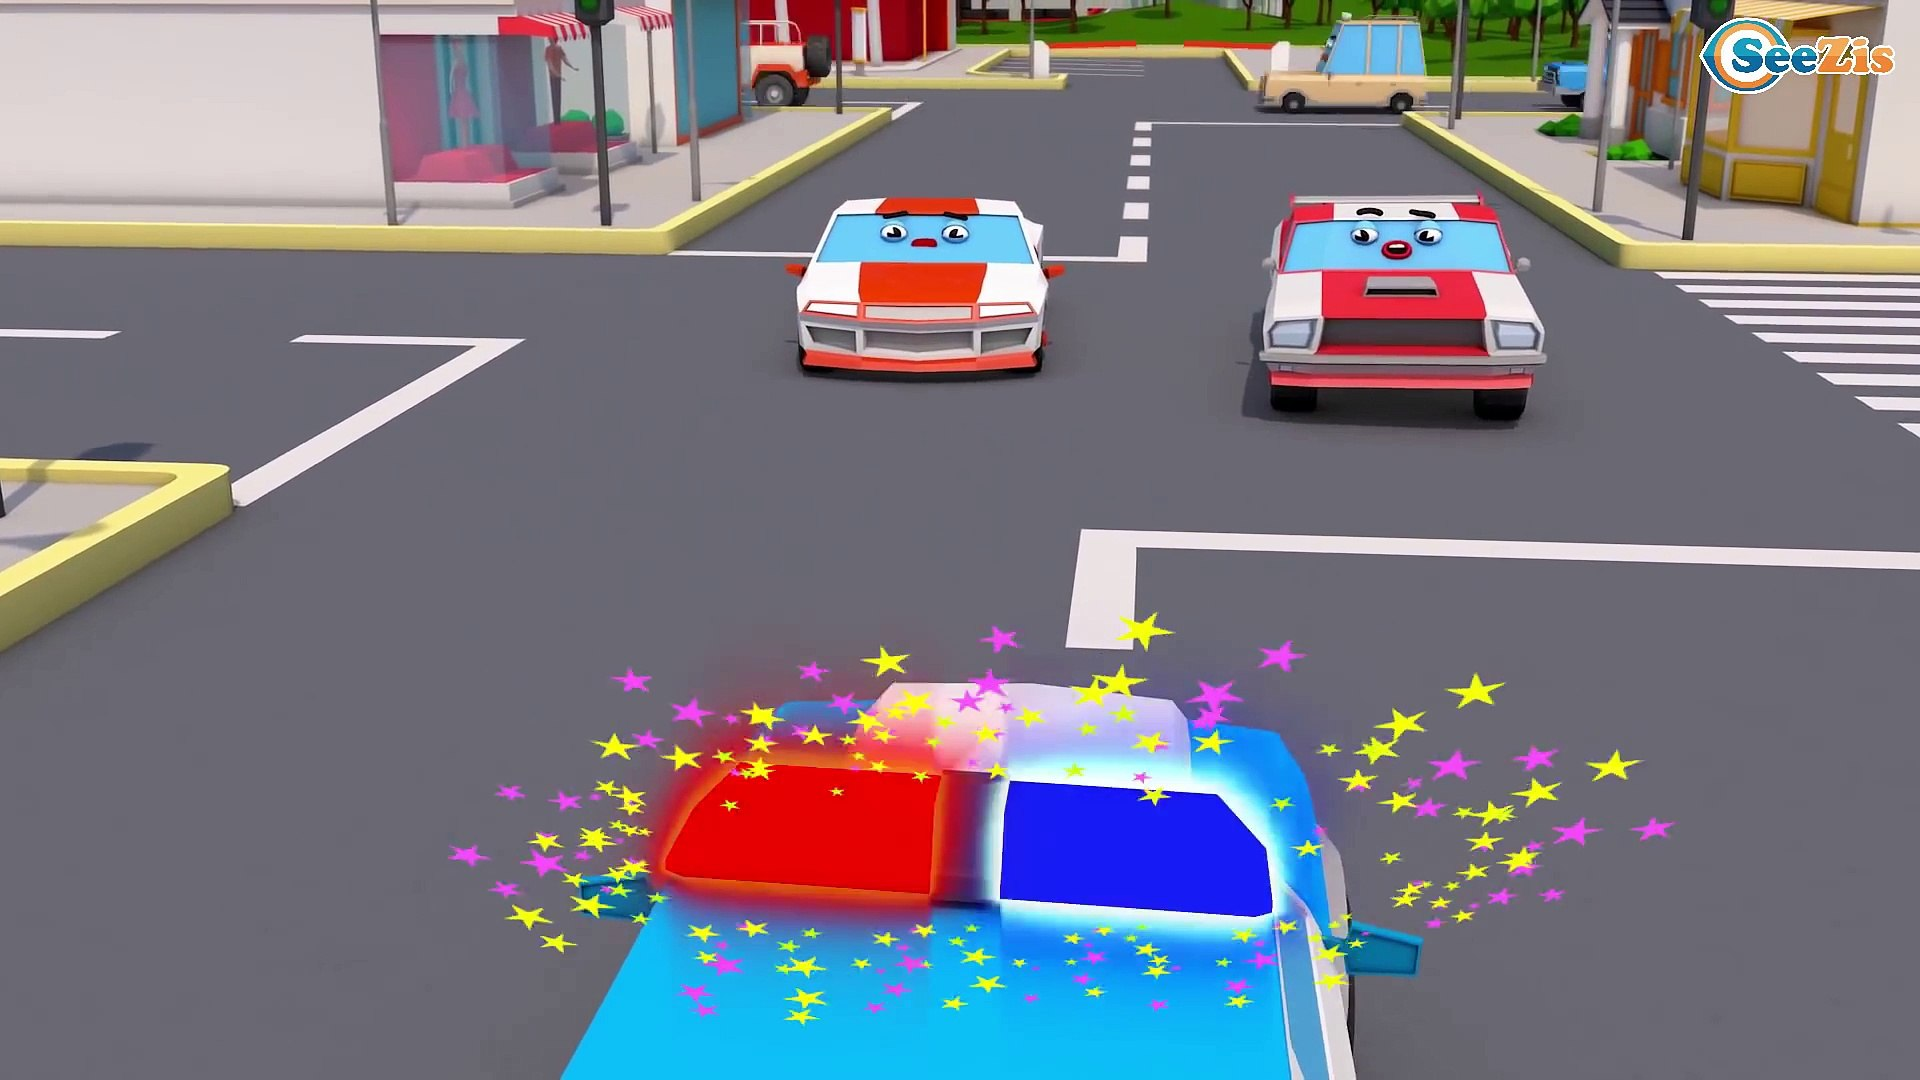 Colors Cars Transportation - Police Car Racing Car Monster Truck & Trucks Cars & Truck Stori